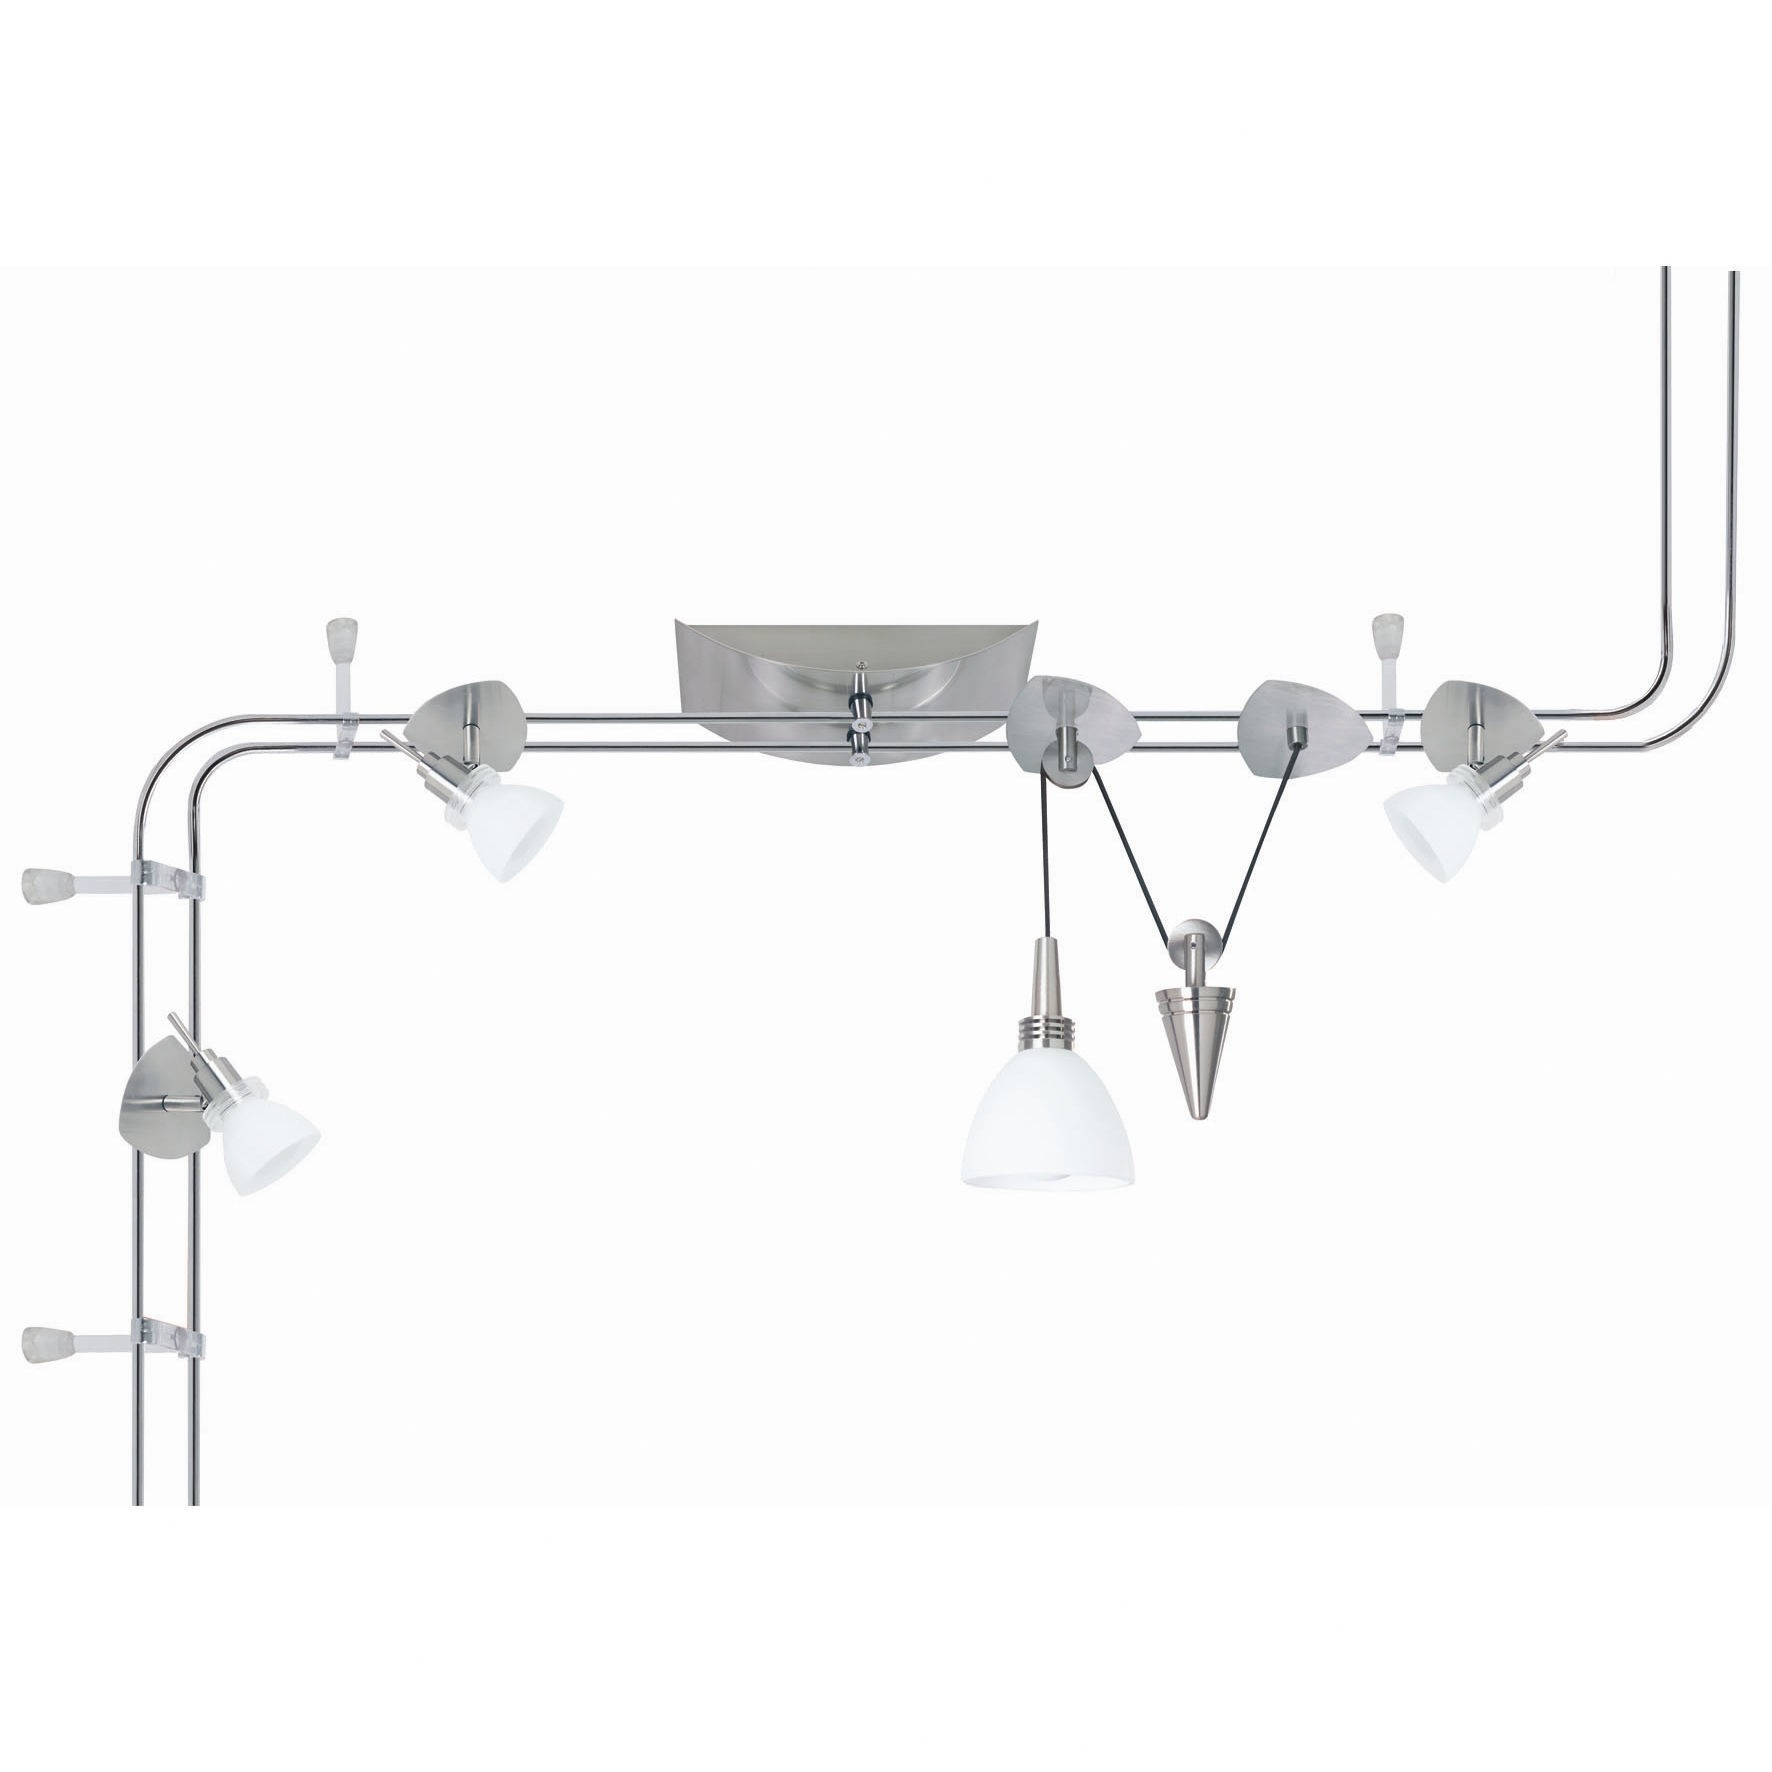 Verbier Iron Look Track Lighting System